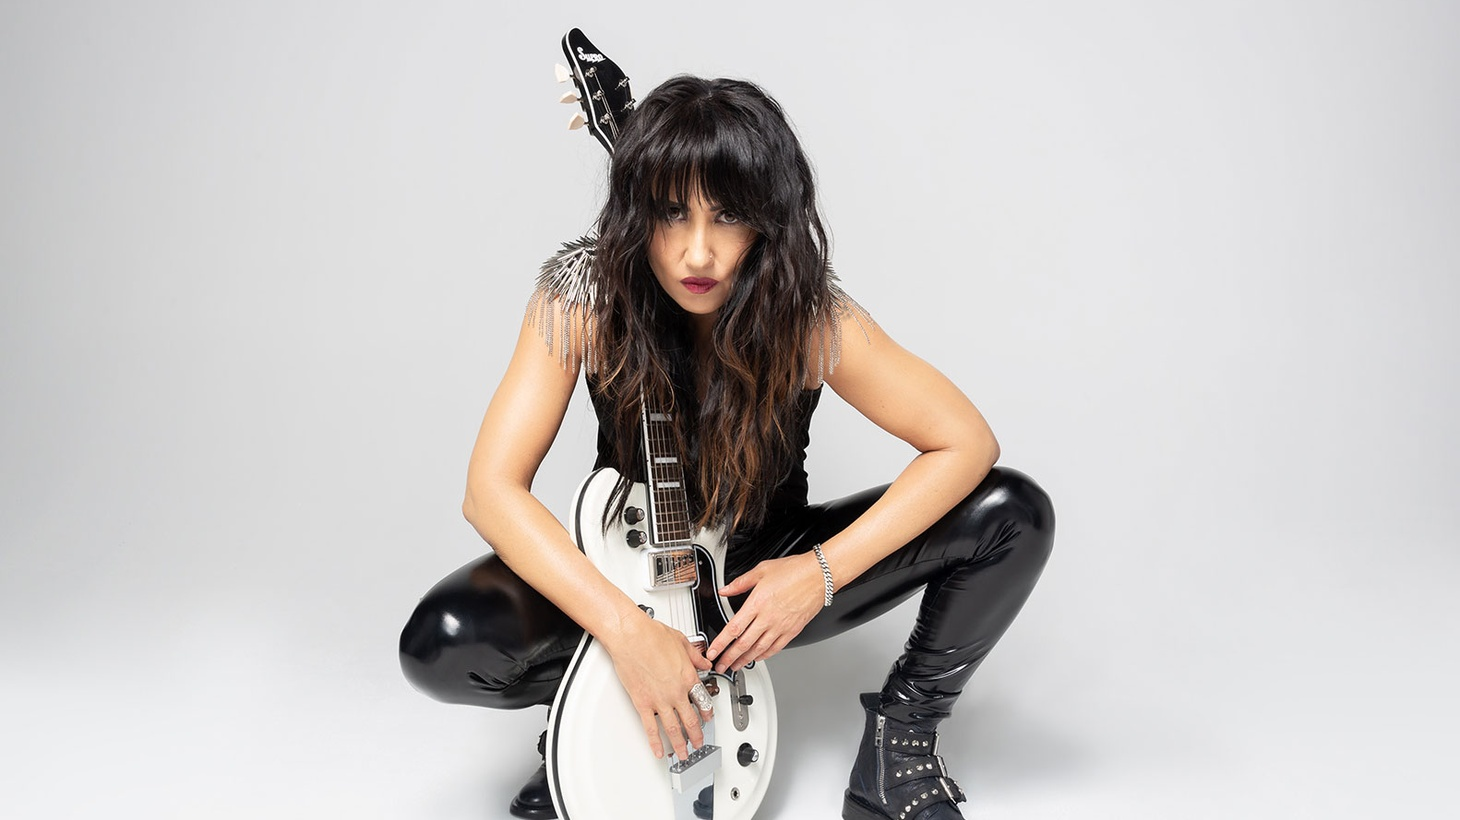 Scottish post-folkie KT Tunstall has seen seismic shifts in her life these past few years: from the loss of her father, to a divorce, and a moveto Venice Beach.Part of a trilogy, her new album is an electric feast both visceral and physical.